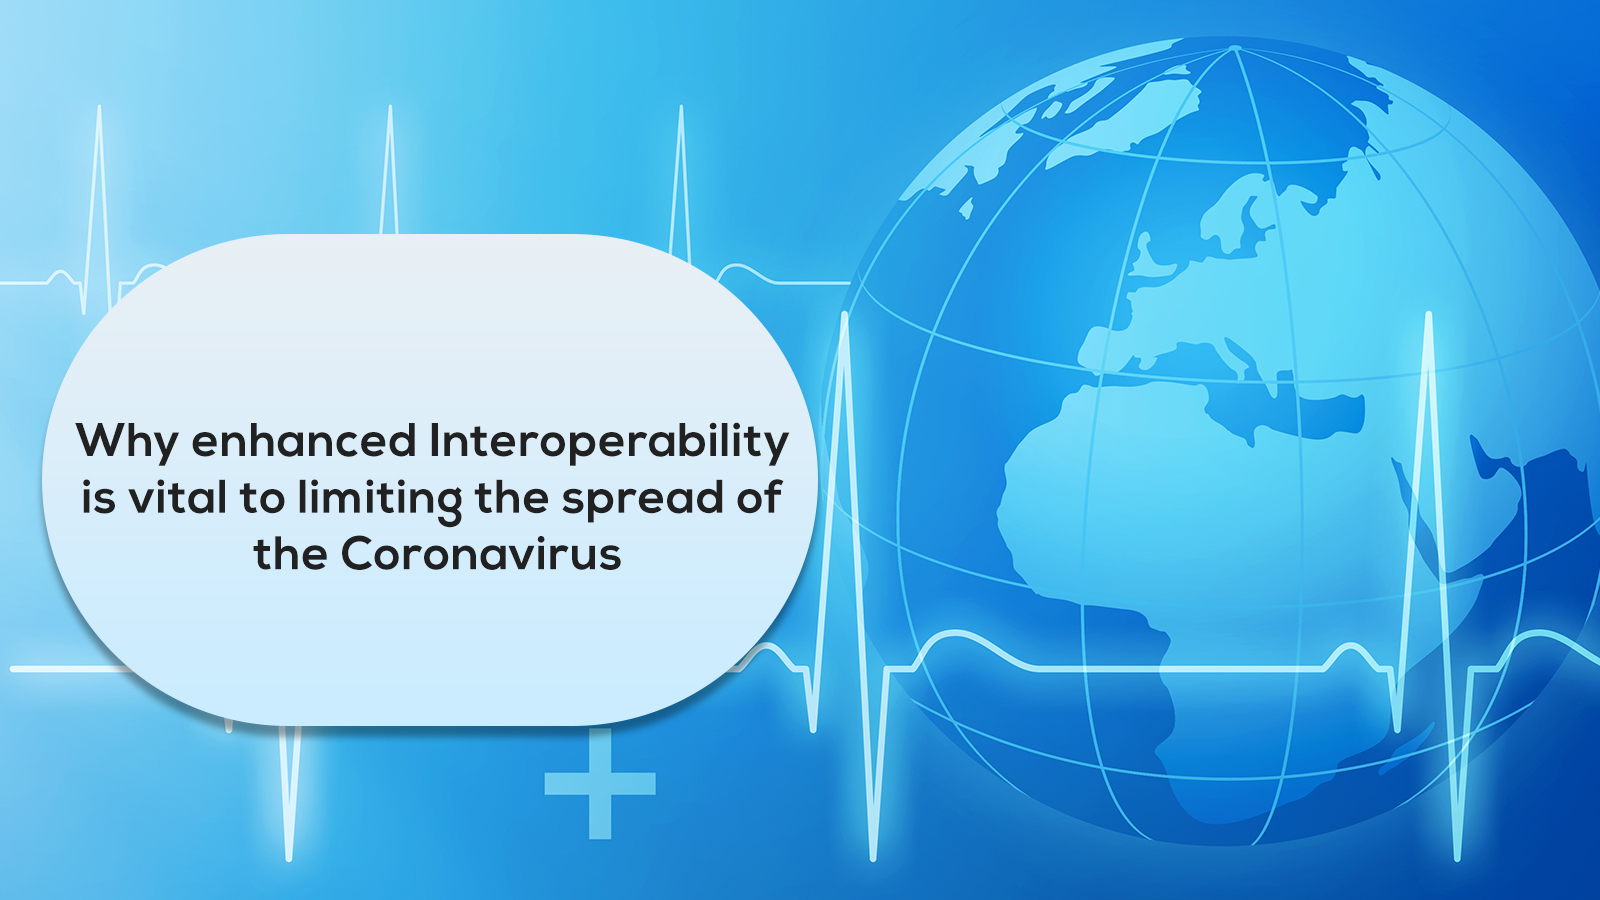 Why enhanced Interoperability is vital to limiting the spread of the coronavirus